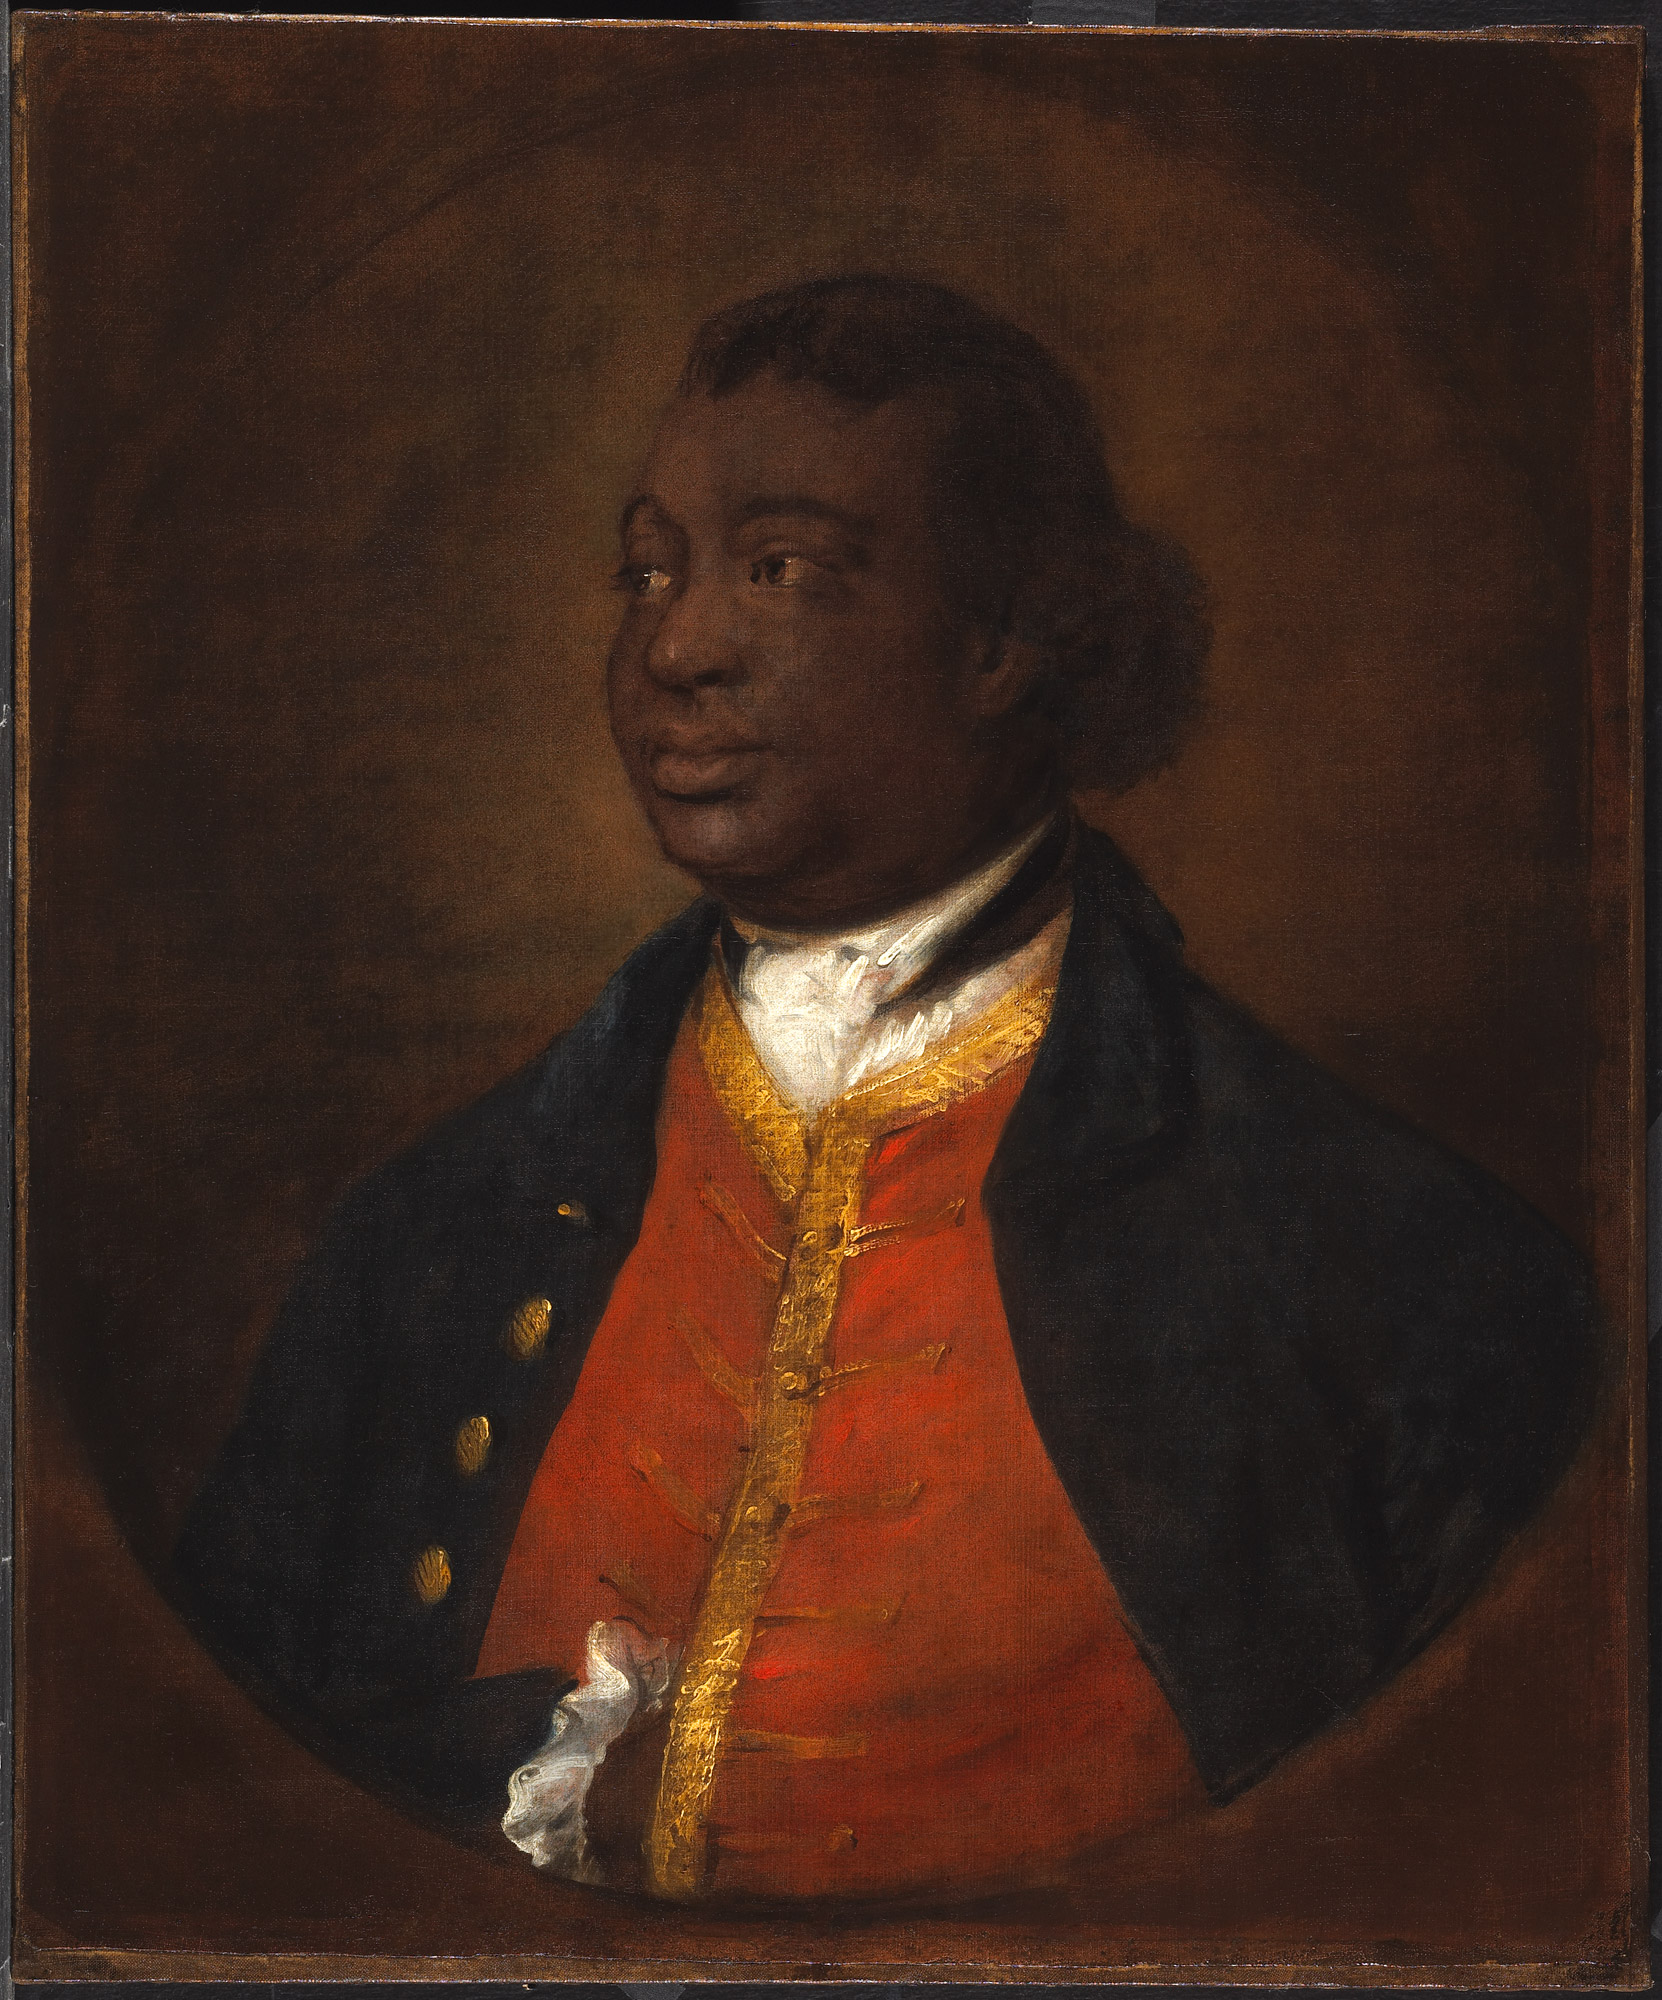 Portrait of Ignatius Sancho by Thomas Gainsborough, 1768